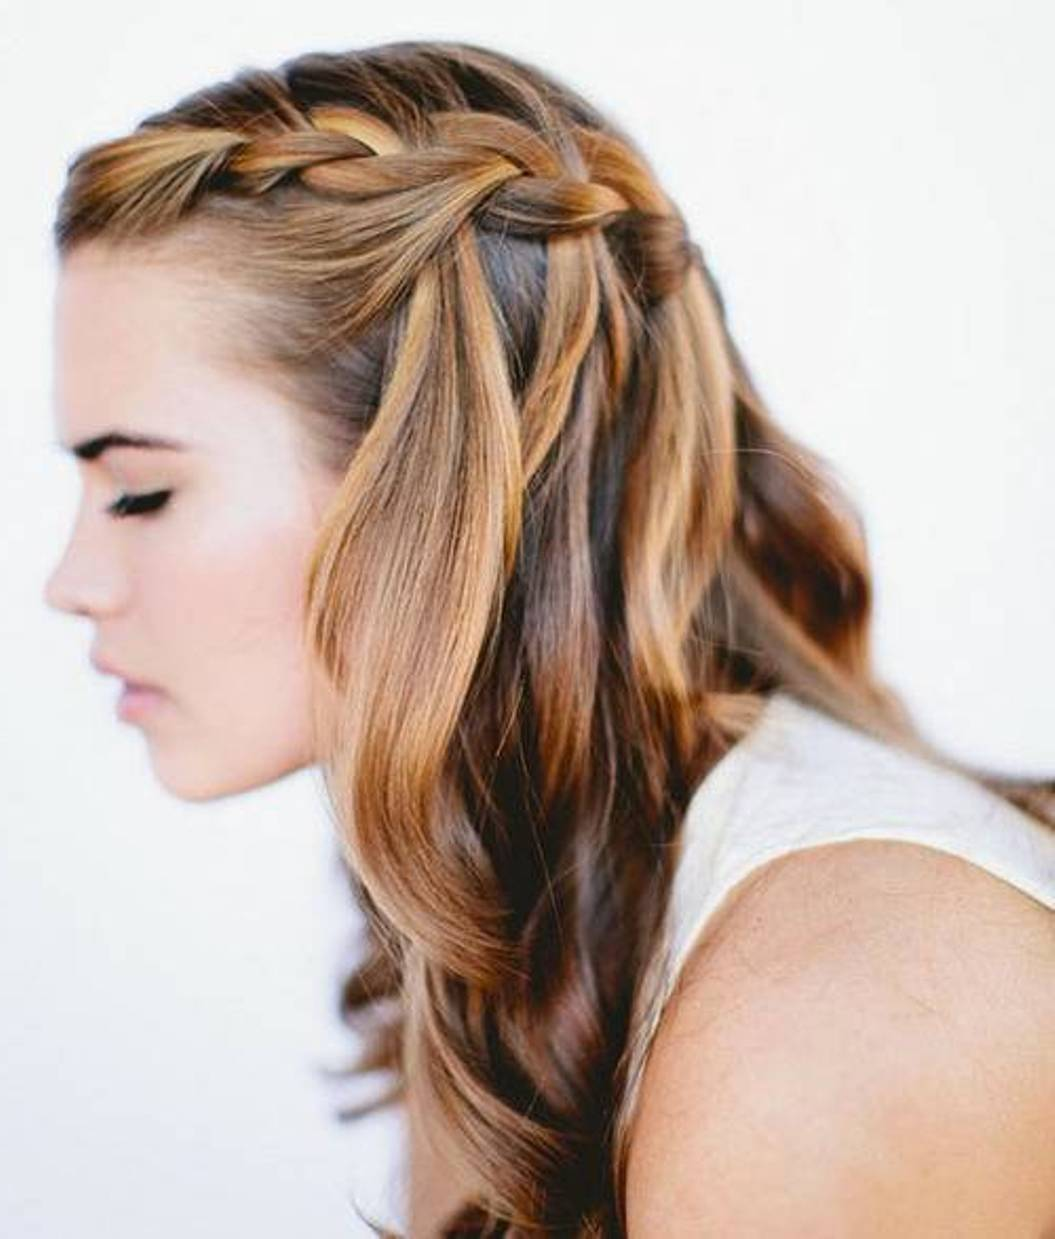 Hairstyle With Braids : Hairstyles For Homecoming With Braids Braid-homecoming-hairstyles.jpg